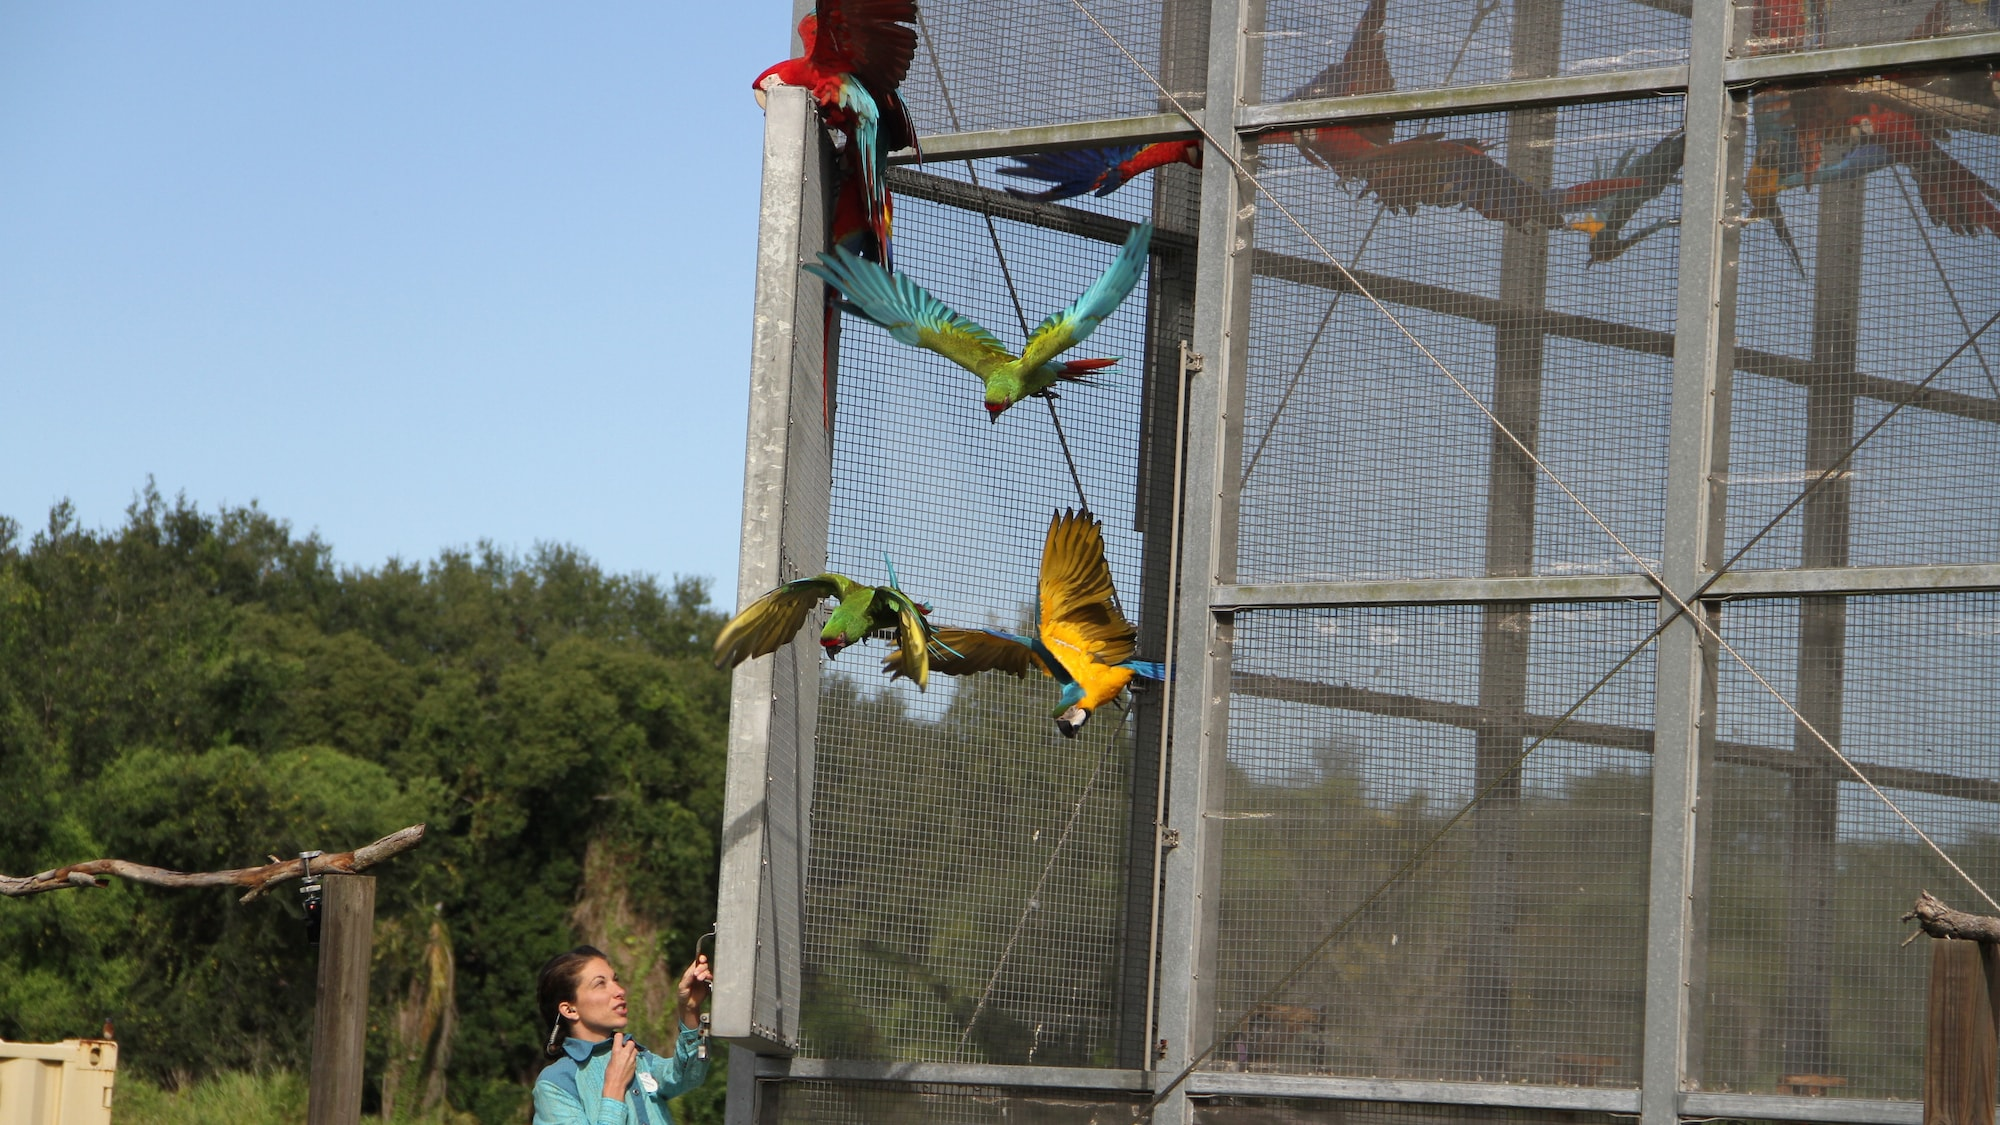 Keeper releases Macaws for training. (Disney)